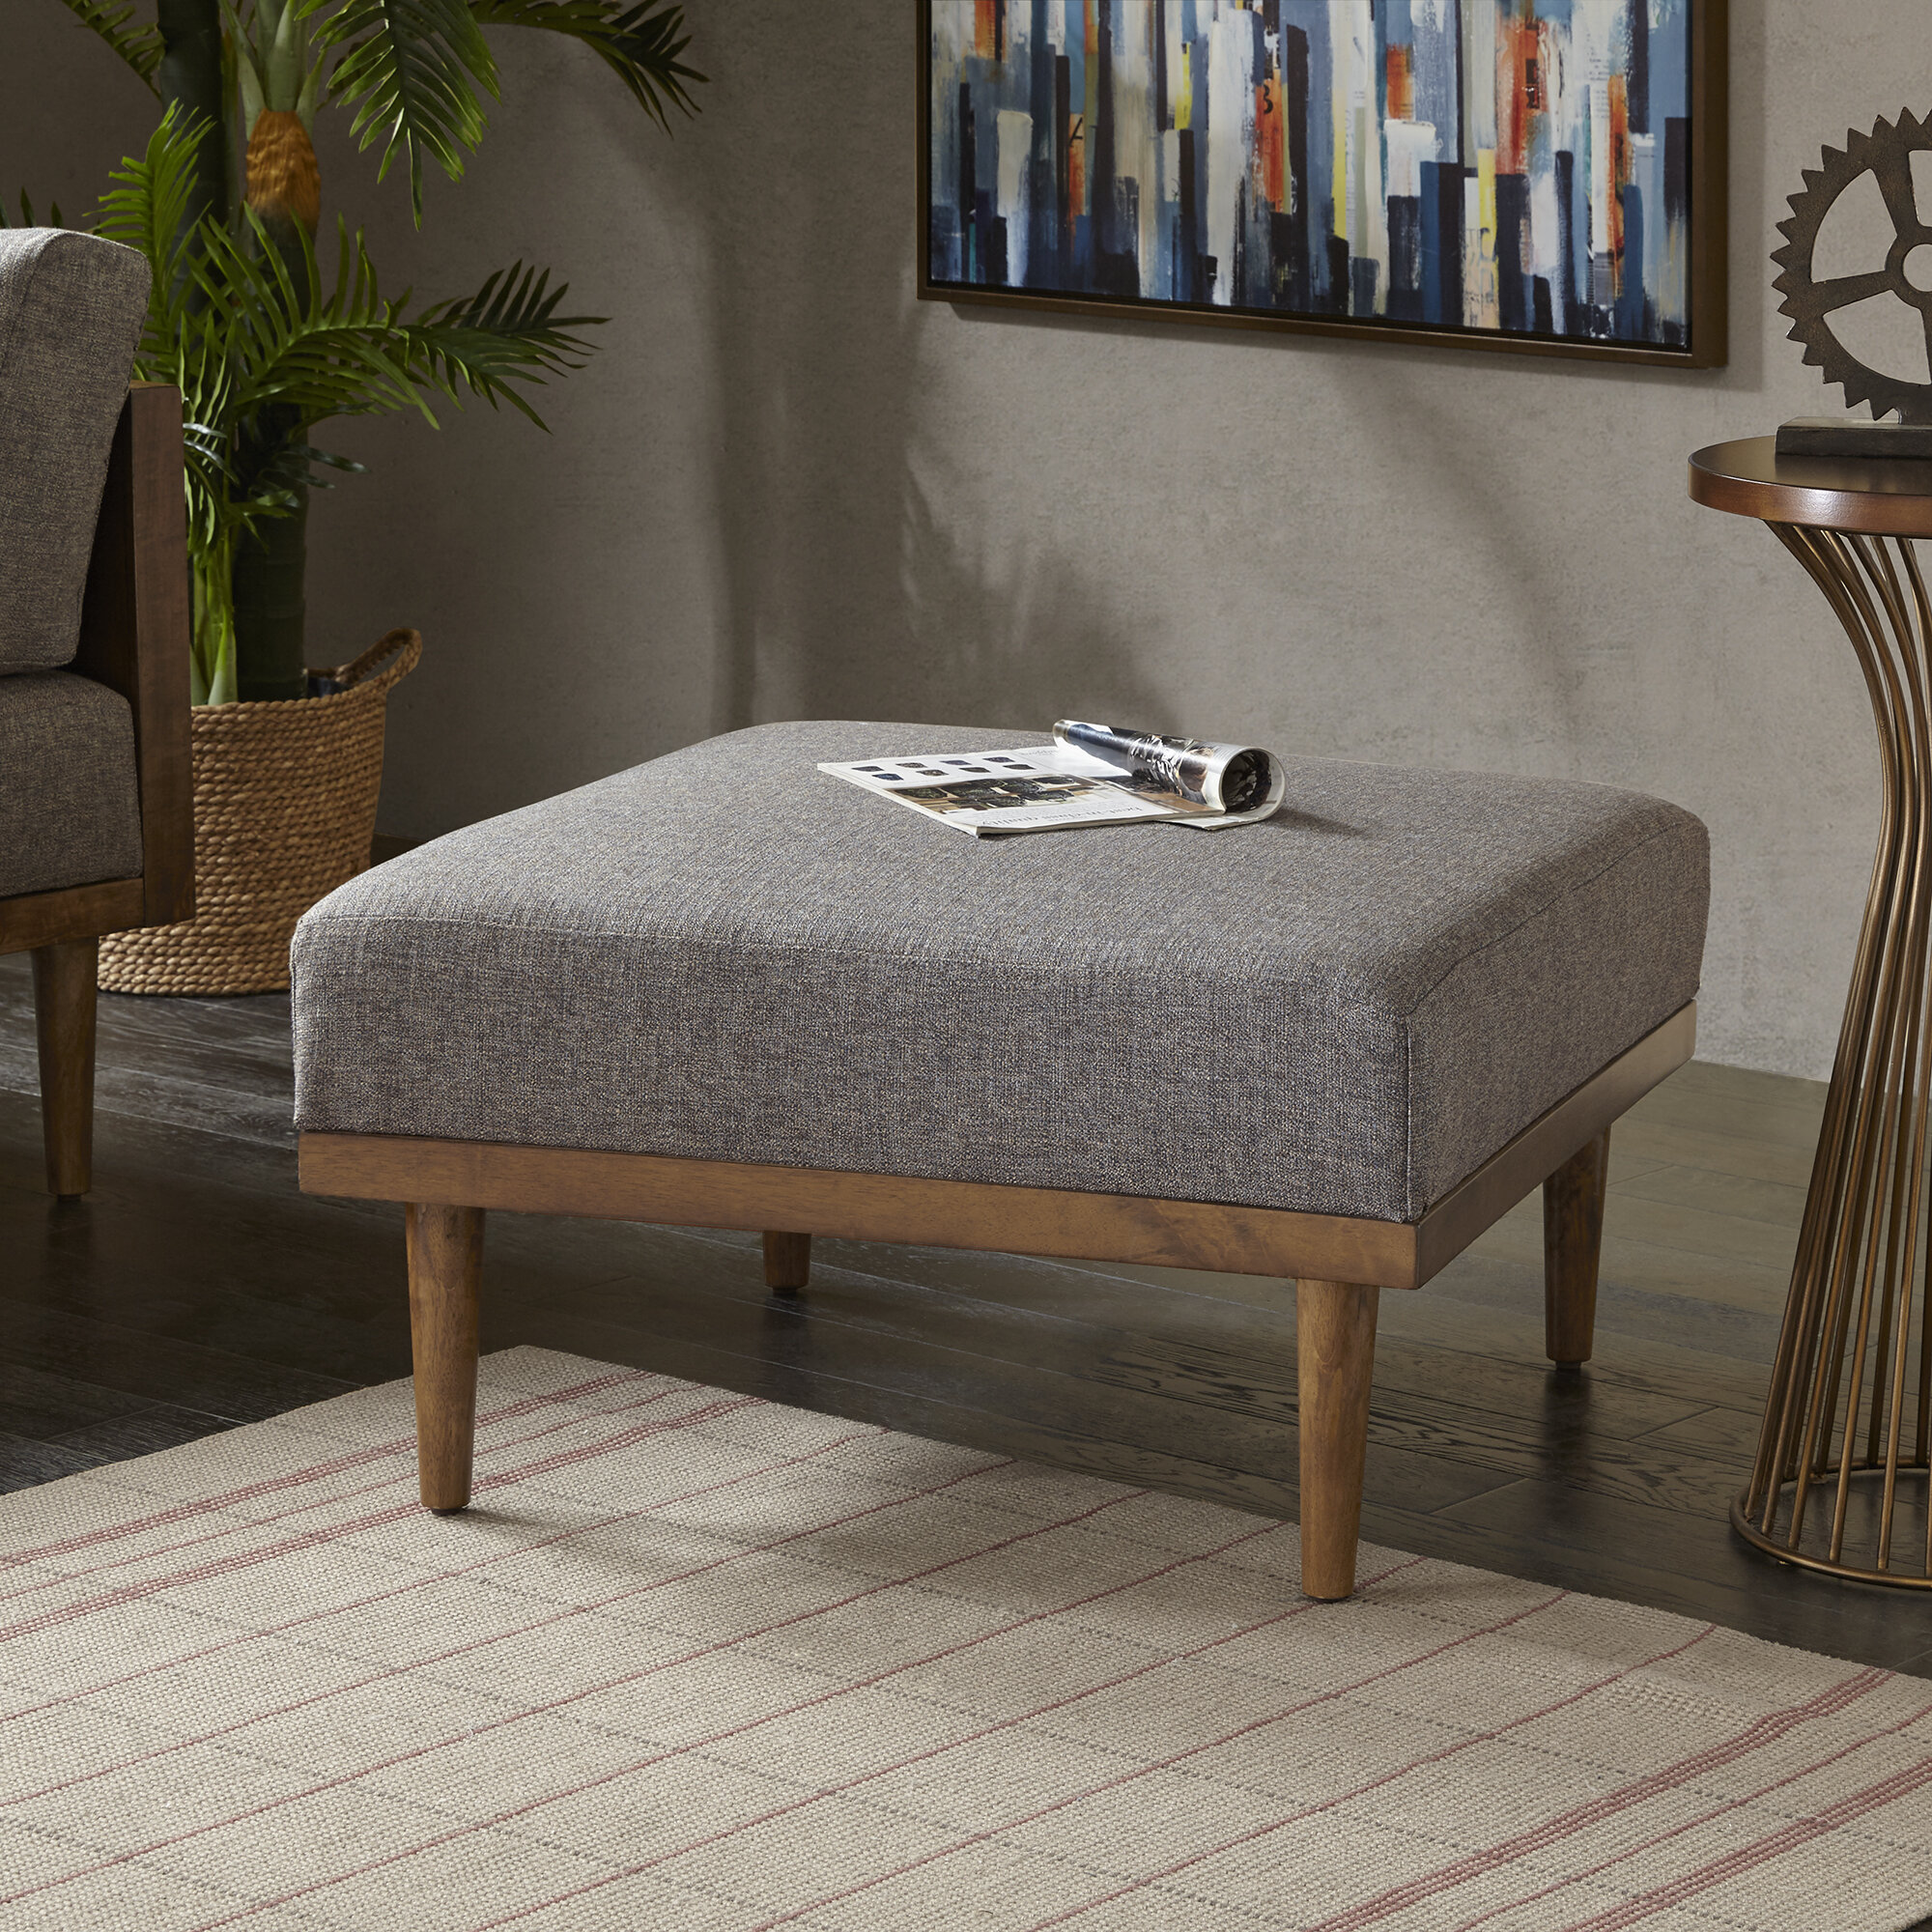 home for products beautiful in of style dorel this square functional espresso room ottomans accent is or depth storage piece any living small benches details perfect need ottoman eng by comes your the